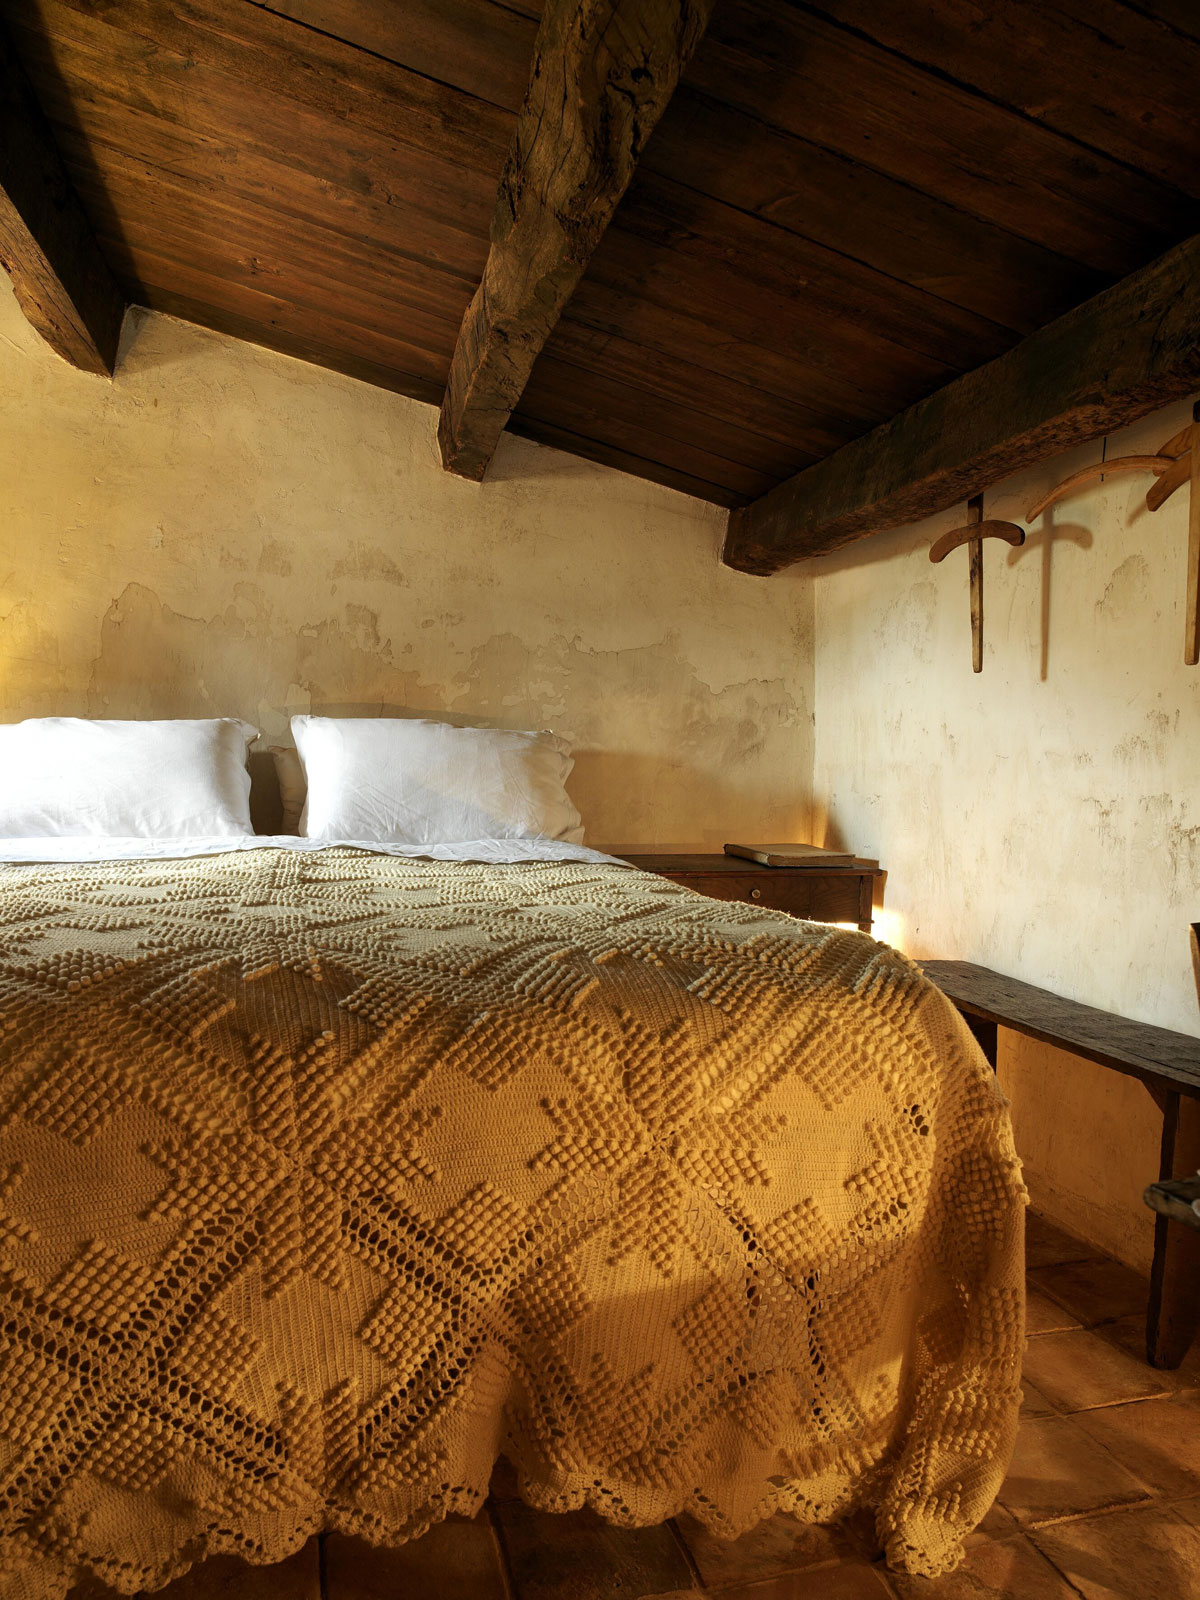 The Fascinating tantio Albergo Diffuso Hotel in Italy